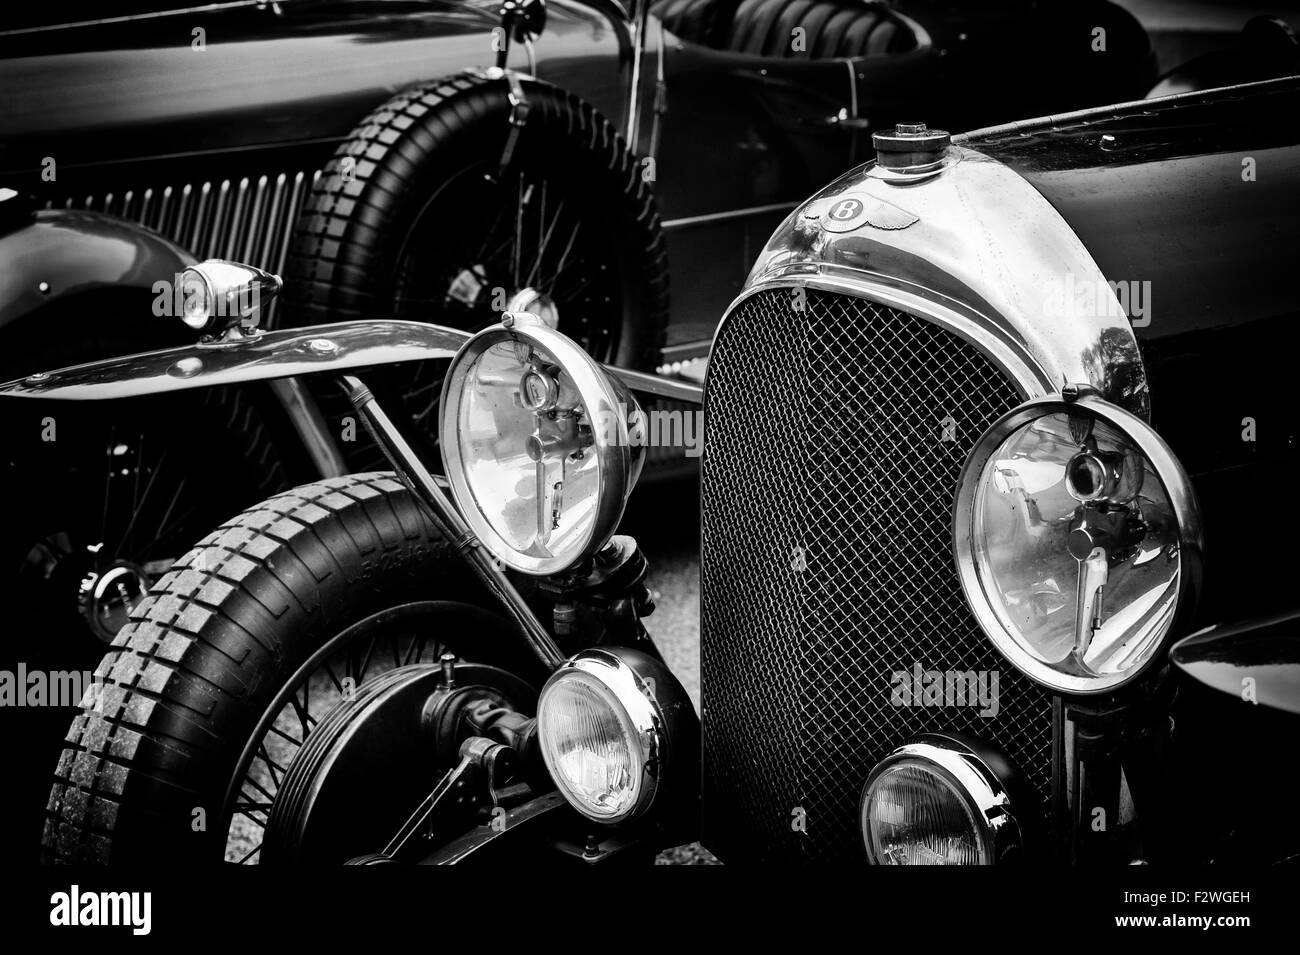 1926 Bentley at Bicester Heritage Centre. Oxfordshire, England. Black and white - Stock Image